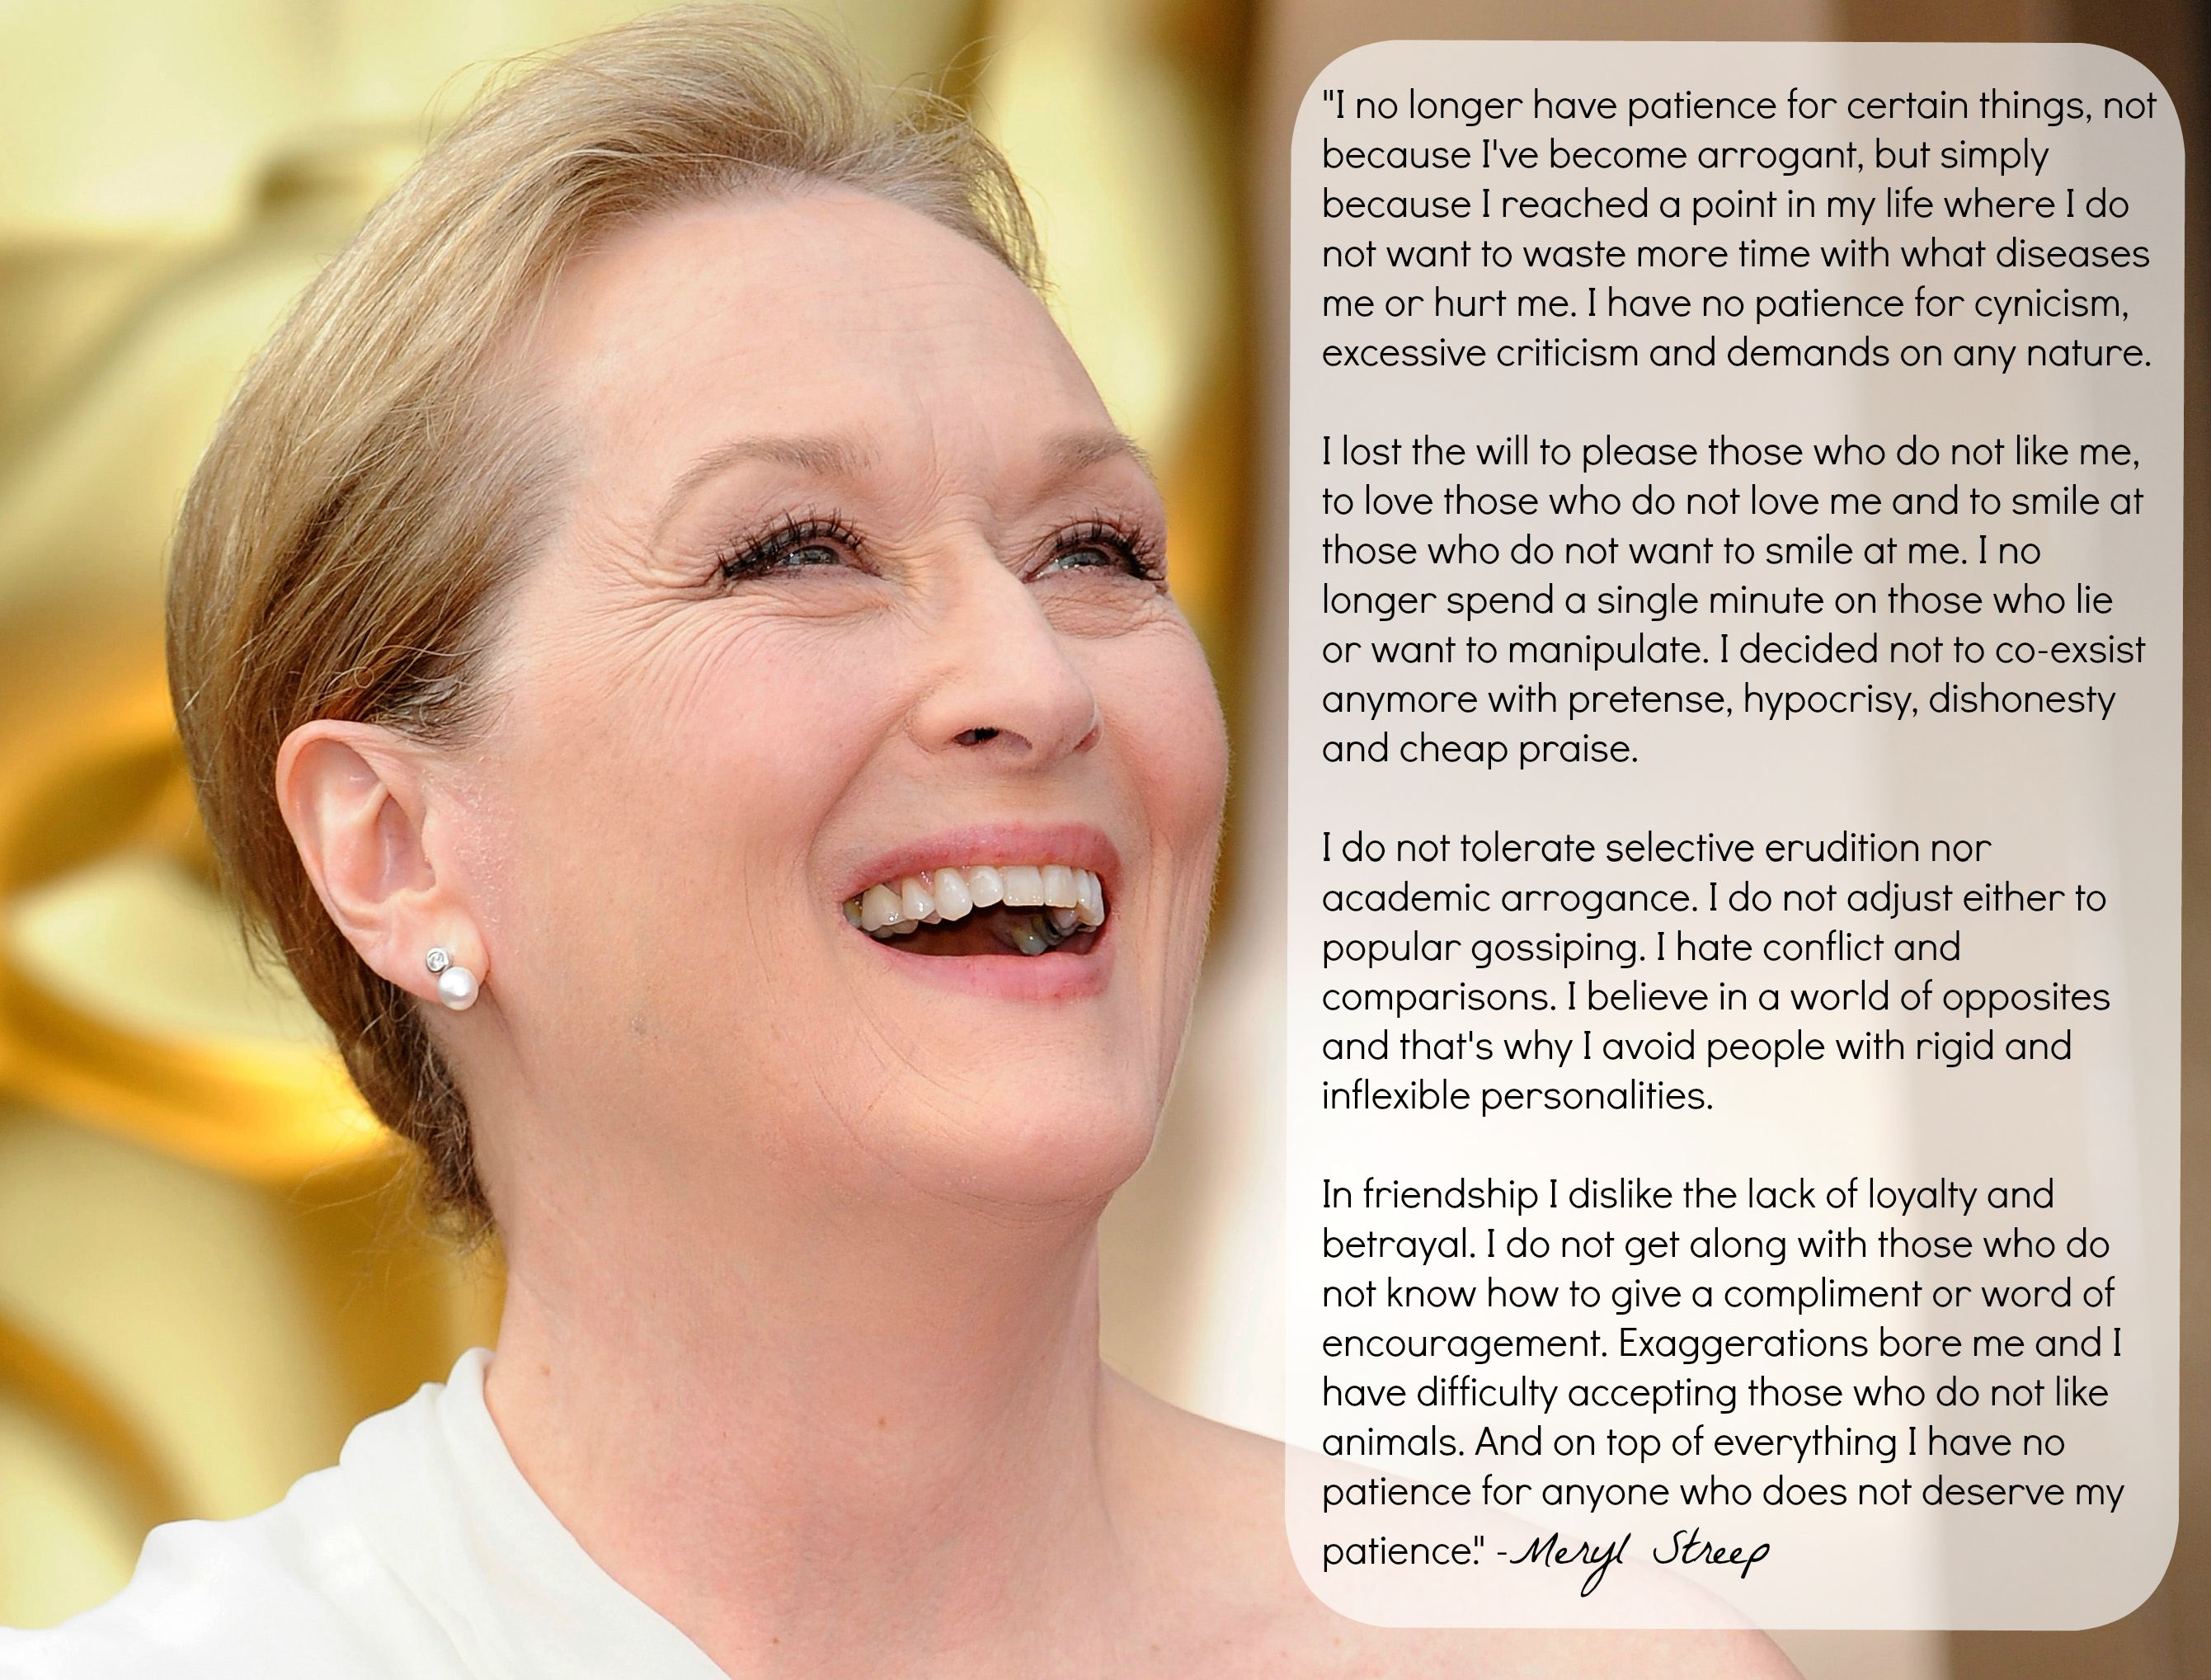 Meryl Streep's insightful quote